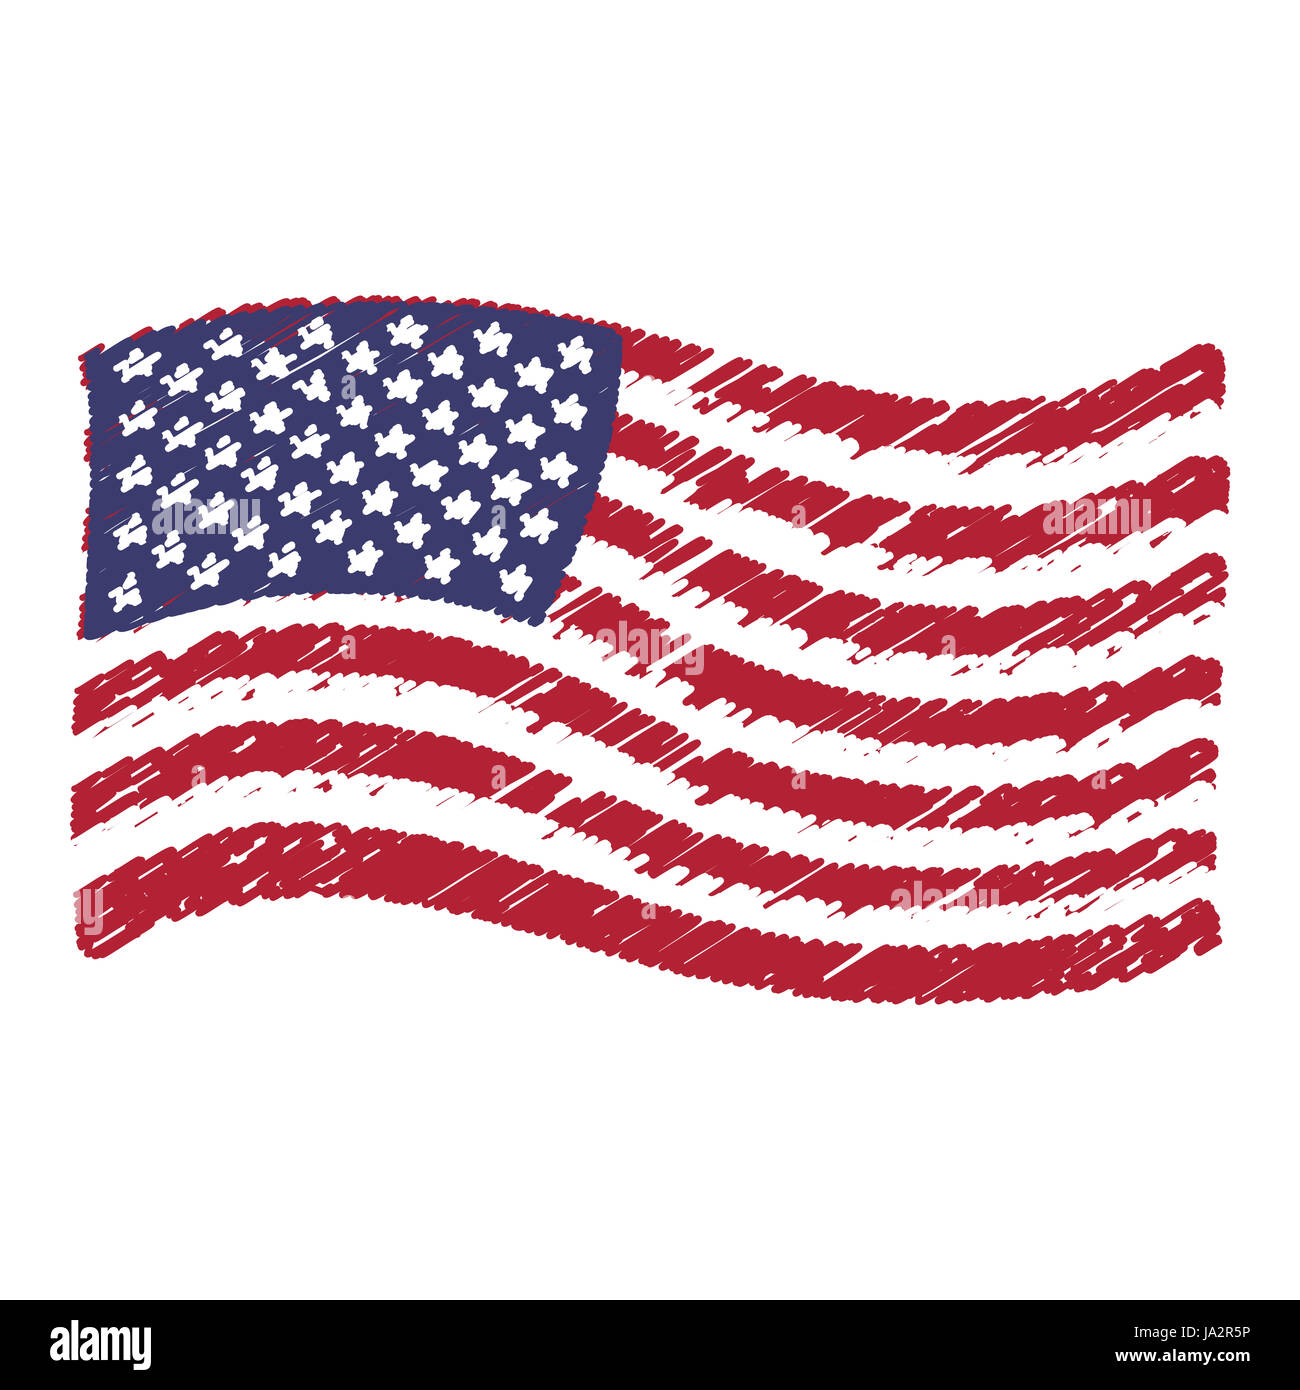 american flag sketch stock